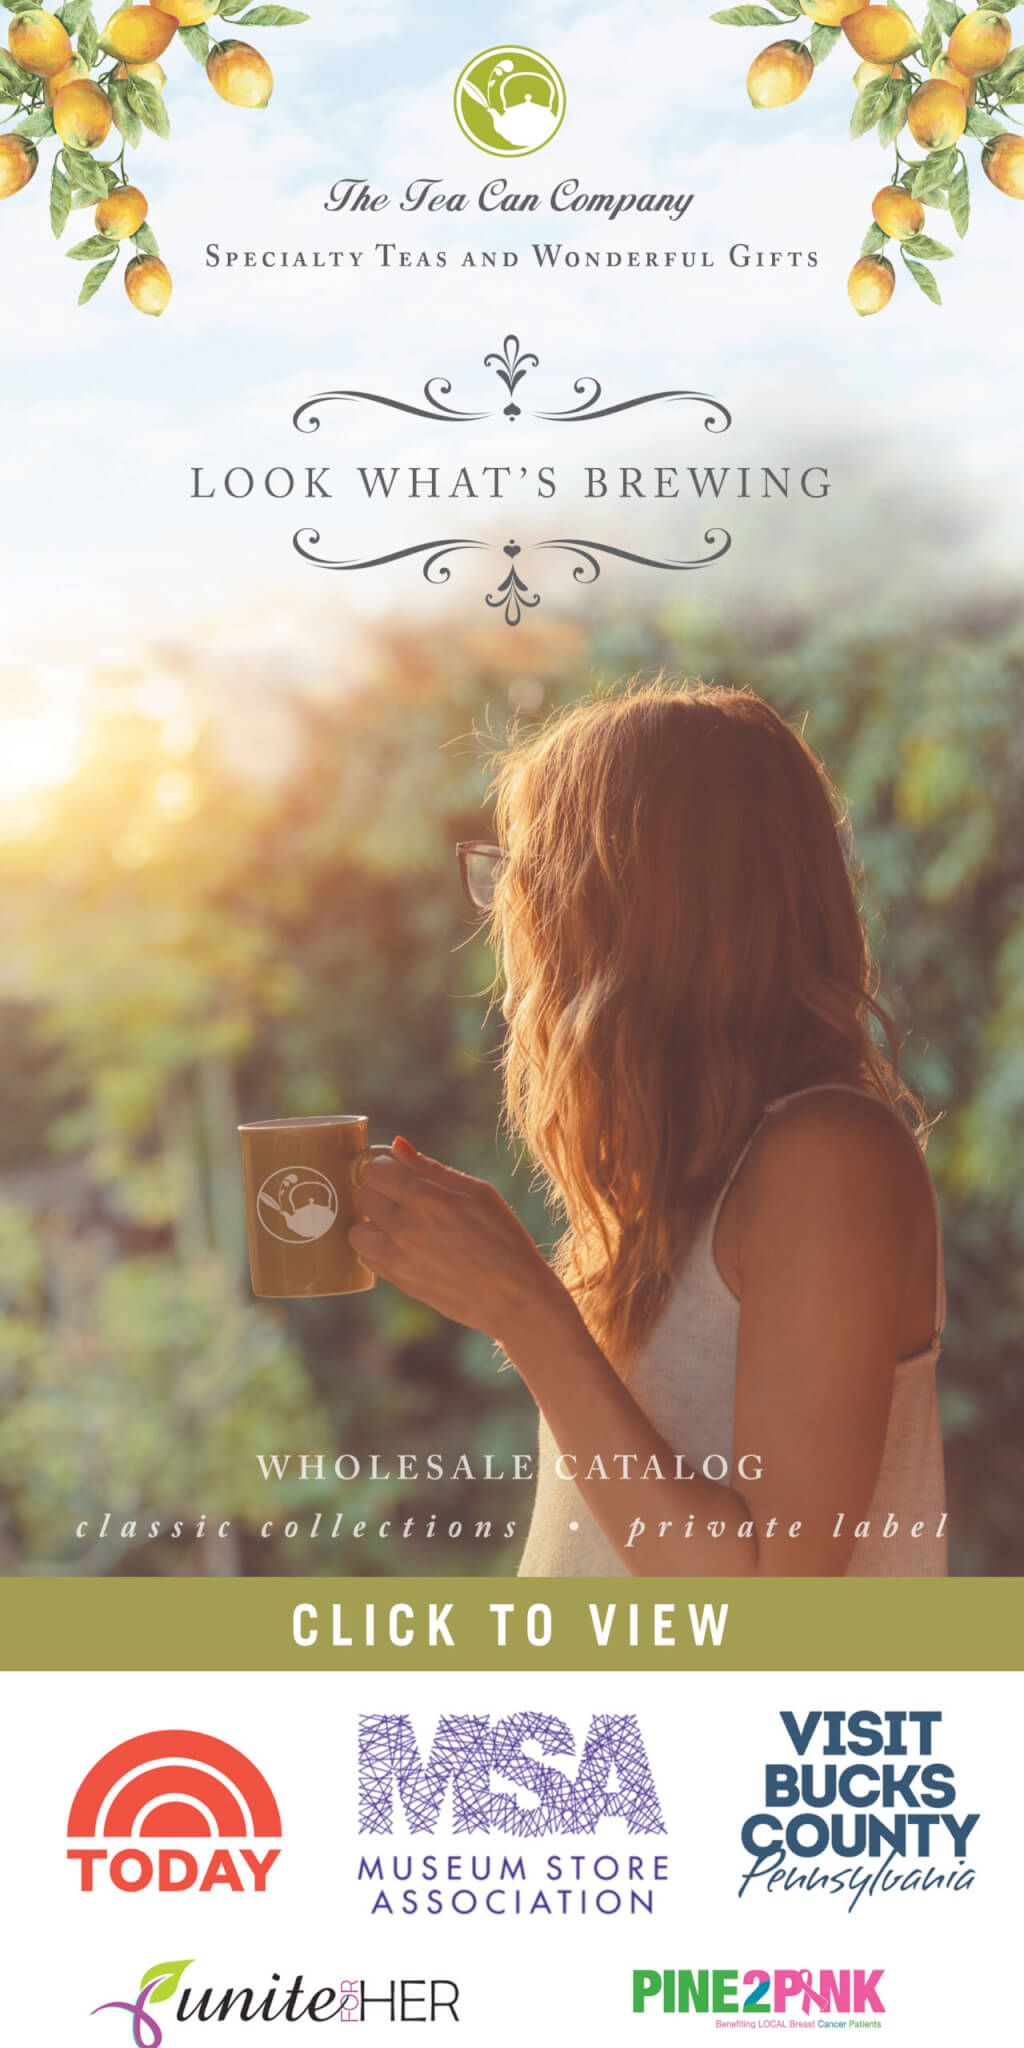 2021 The Tea CAn Company Wholesale Catalog with Logos